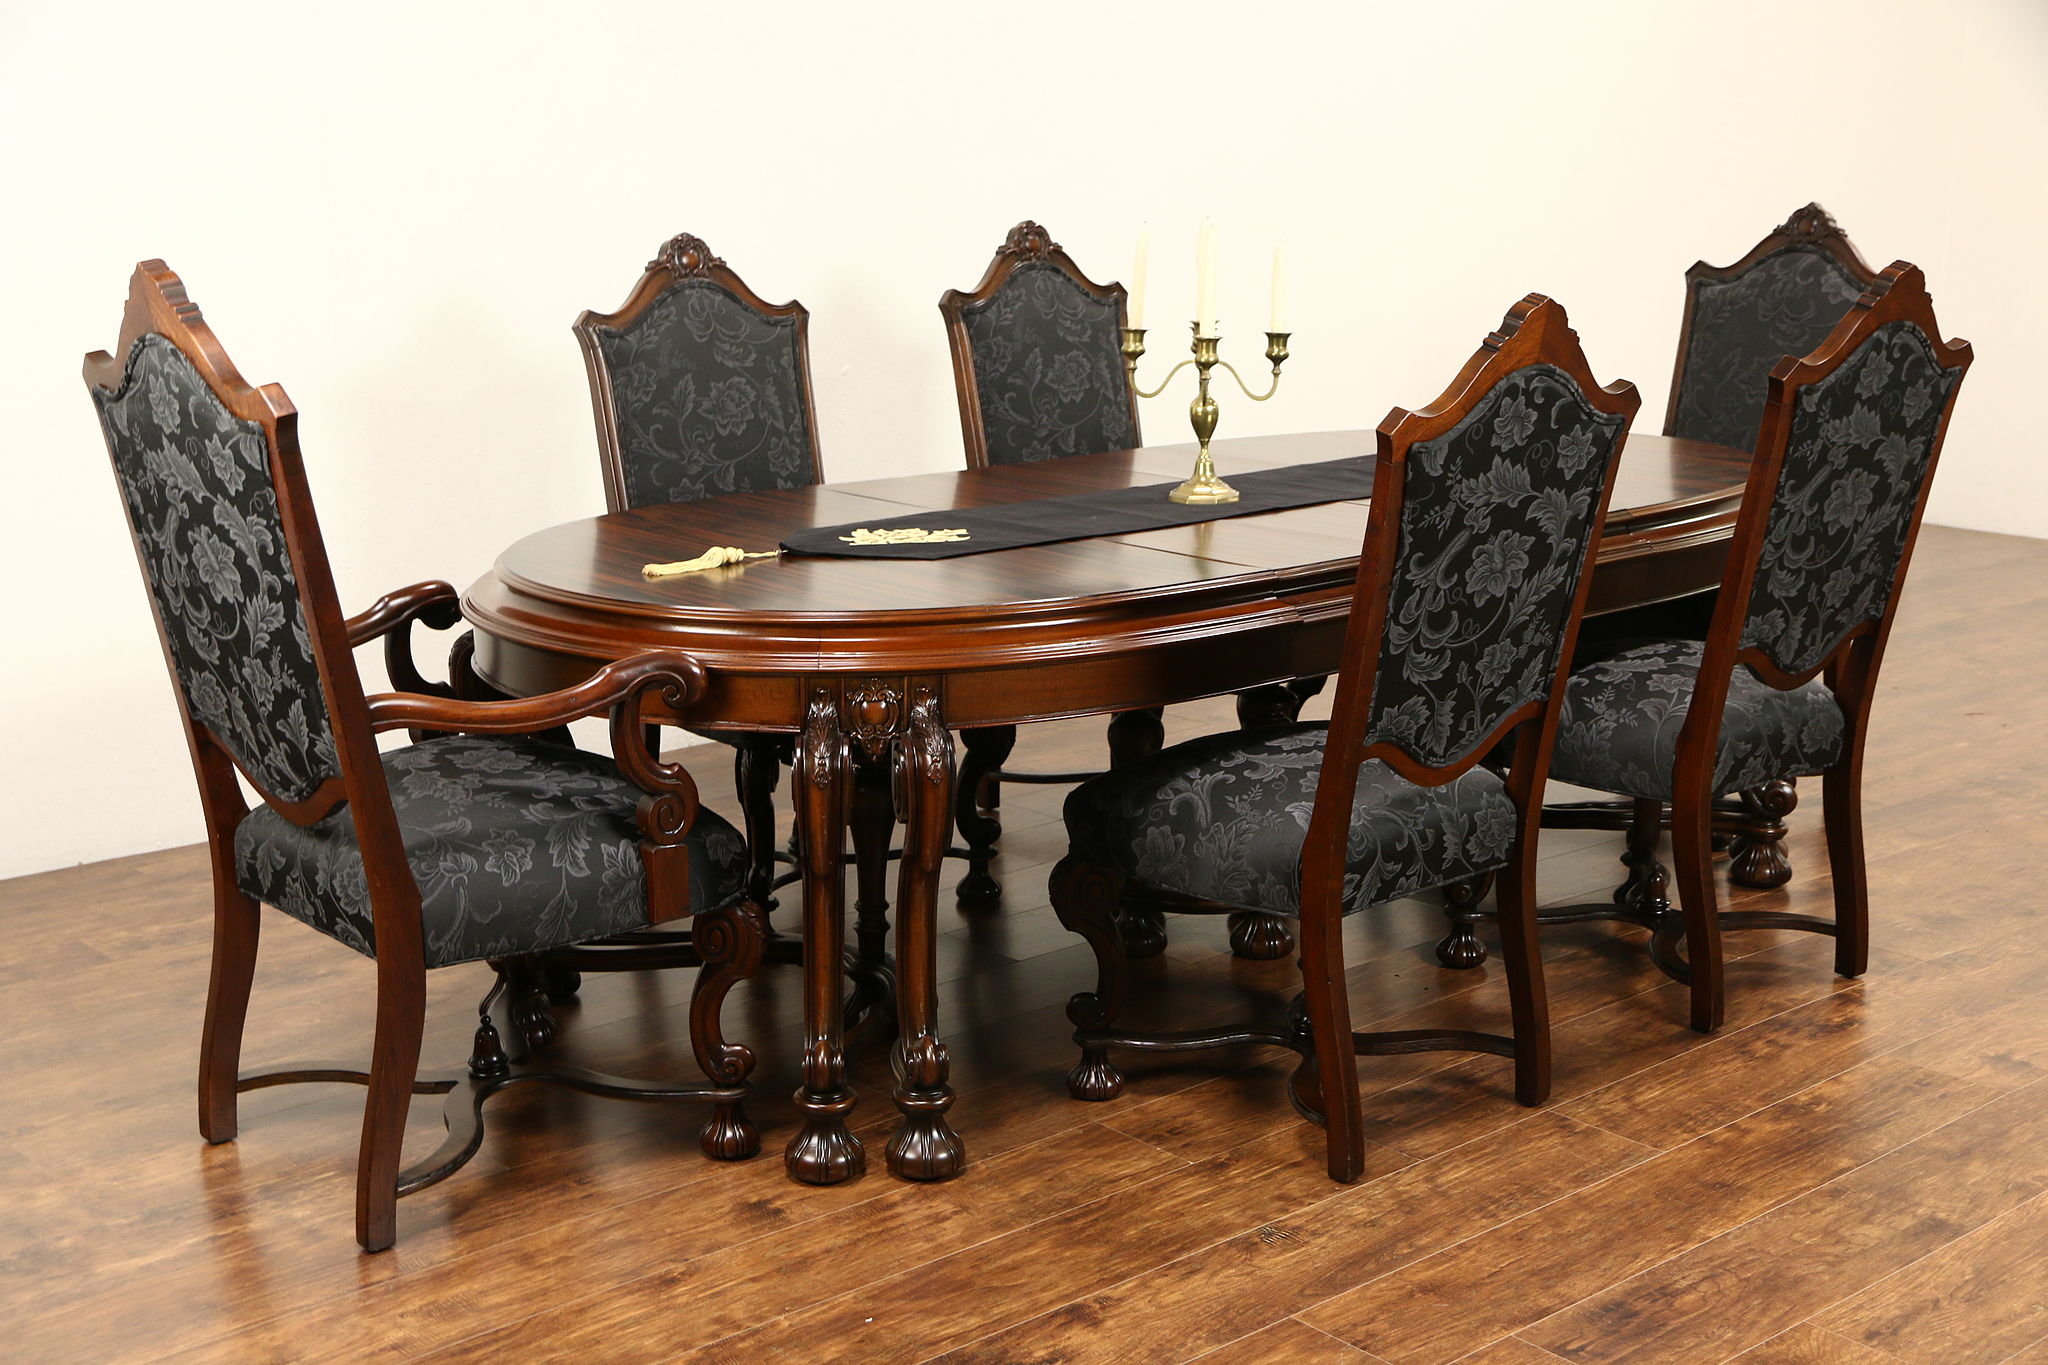 Renaissance 1925 antique dining set table 3 leaves 6 chairs new upholstery